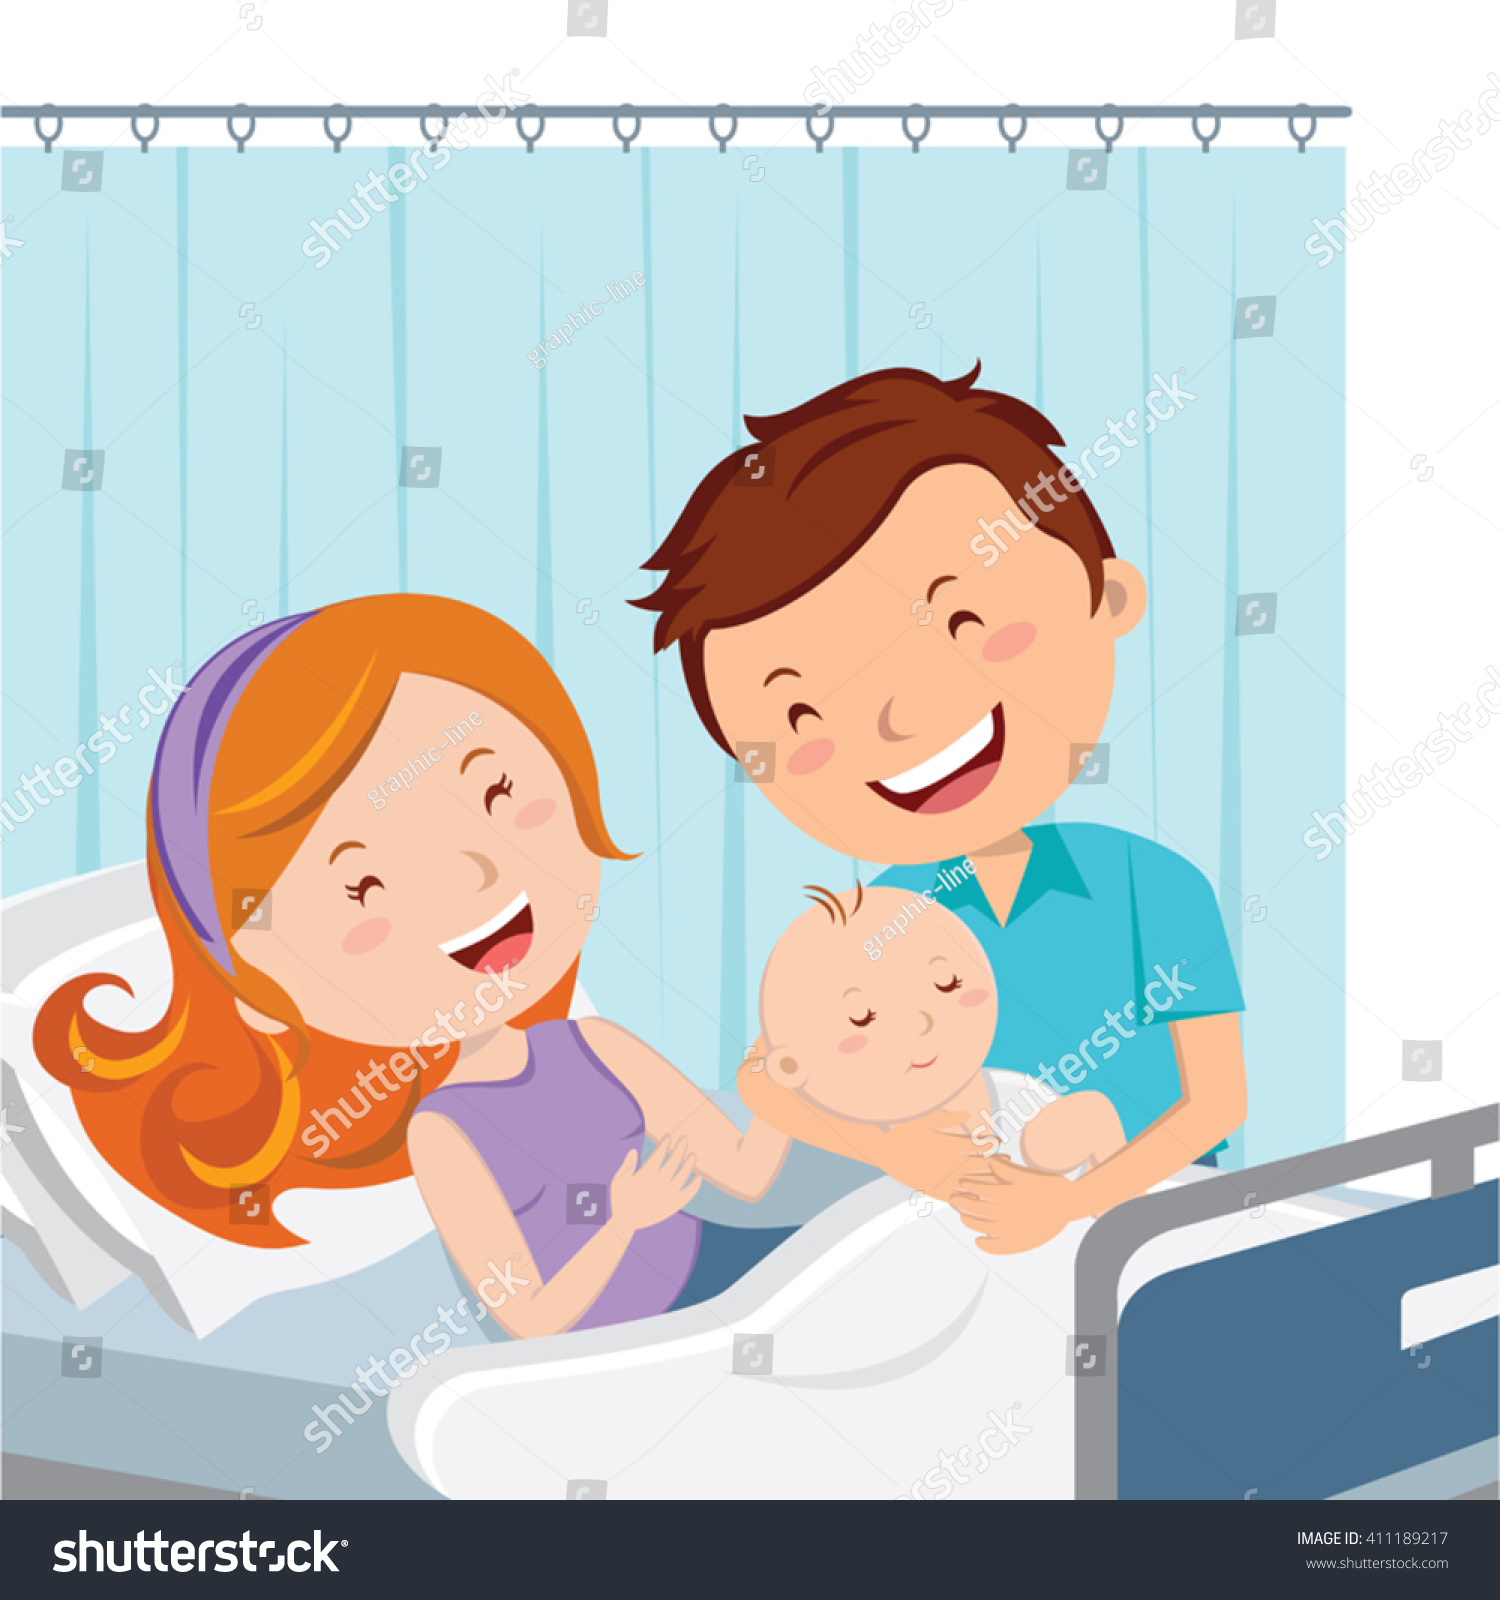 Parents Holding Child In Hospital Room